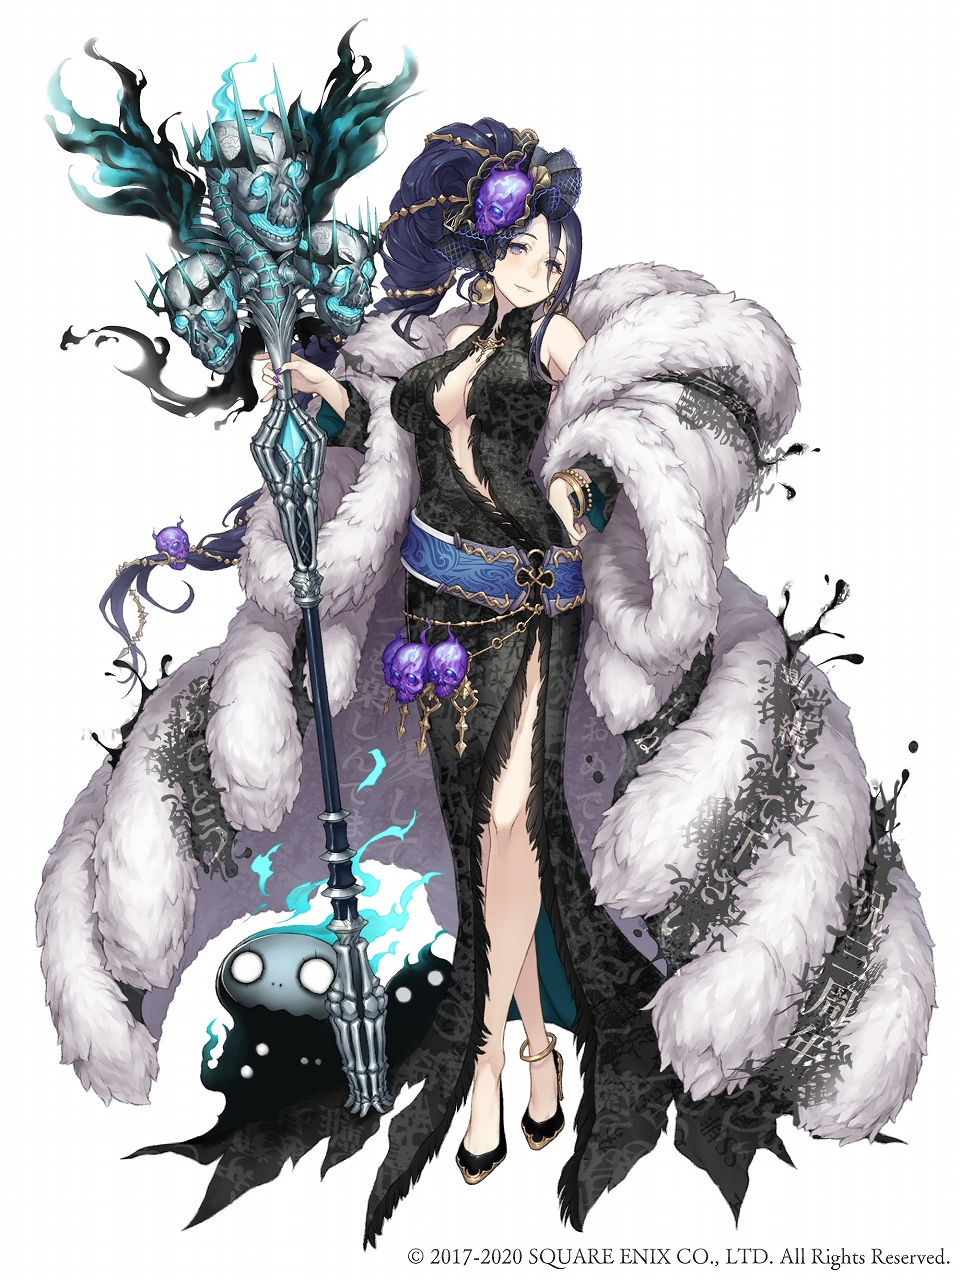 1girl anklet black_dress black_hair blue_eyes bracelet breasts center_opening crossed_legs dress earrings full_body fur_coat fur_trim gold_trim hand_on_hip high_heels highres holding holding_staff jewelry ji_no kaguya_hime_(sinoalice) large_breasts long_hair looking_at_viewer nail_polish nightmare_(sinoalice) official_art side_slit sinoalice skull solo square_enix staff very_long_hair watson_cross white_background